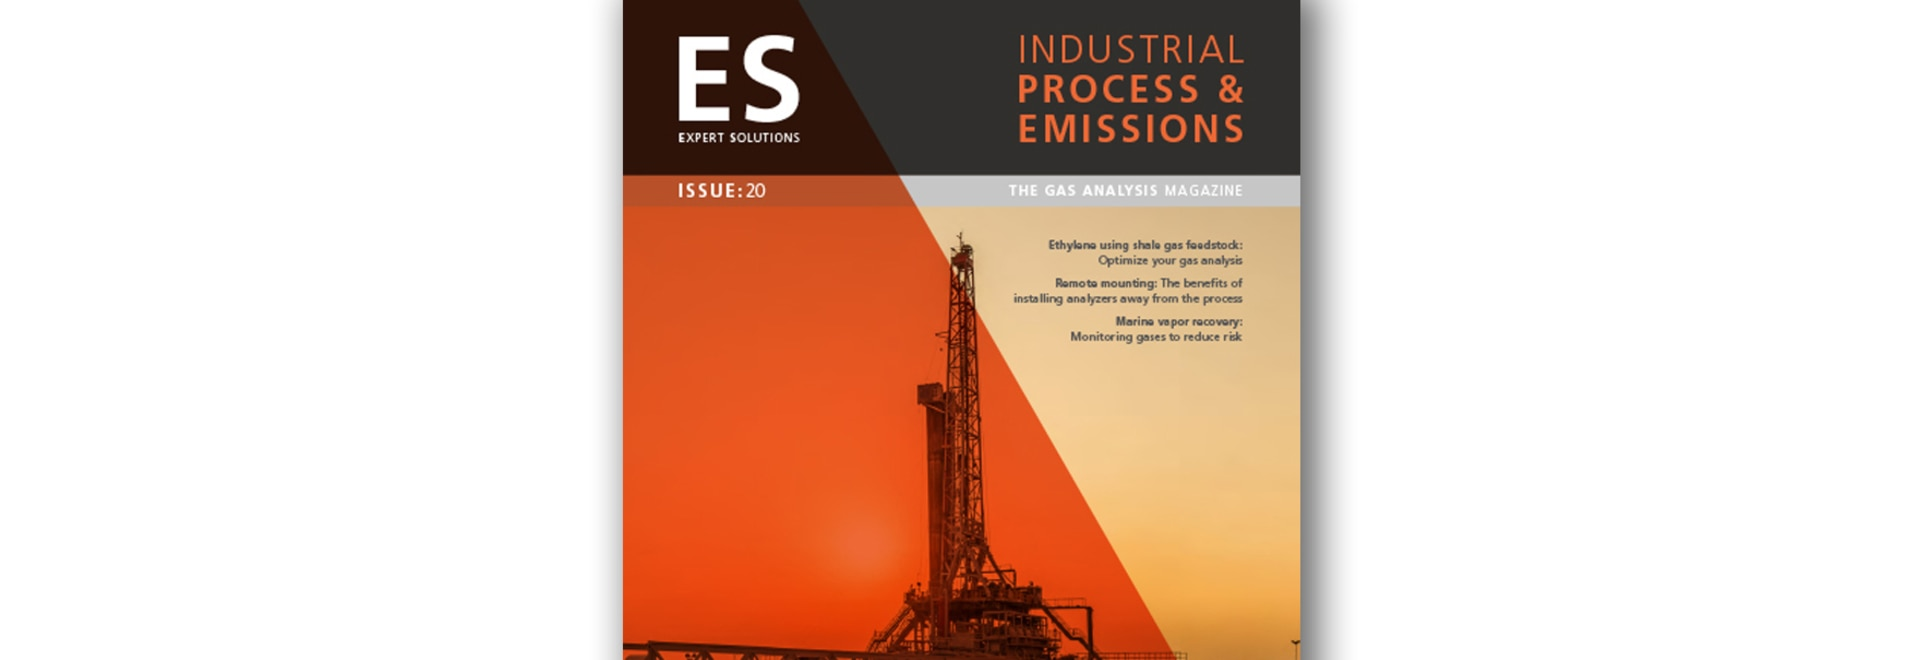 Our new Industrial Process and Emissions magazine is ready to download!